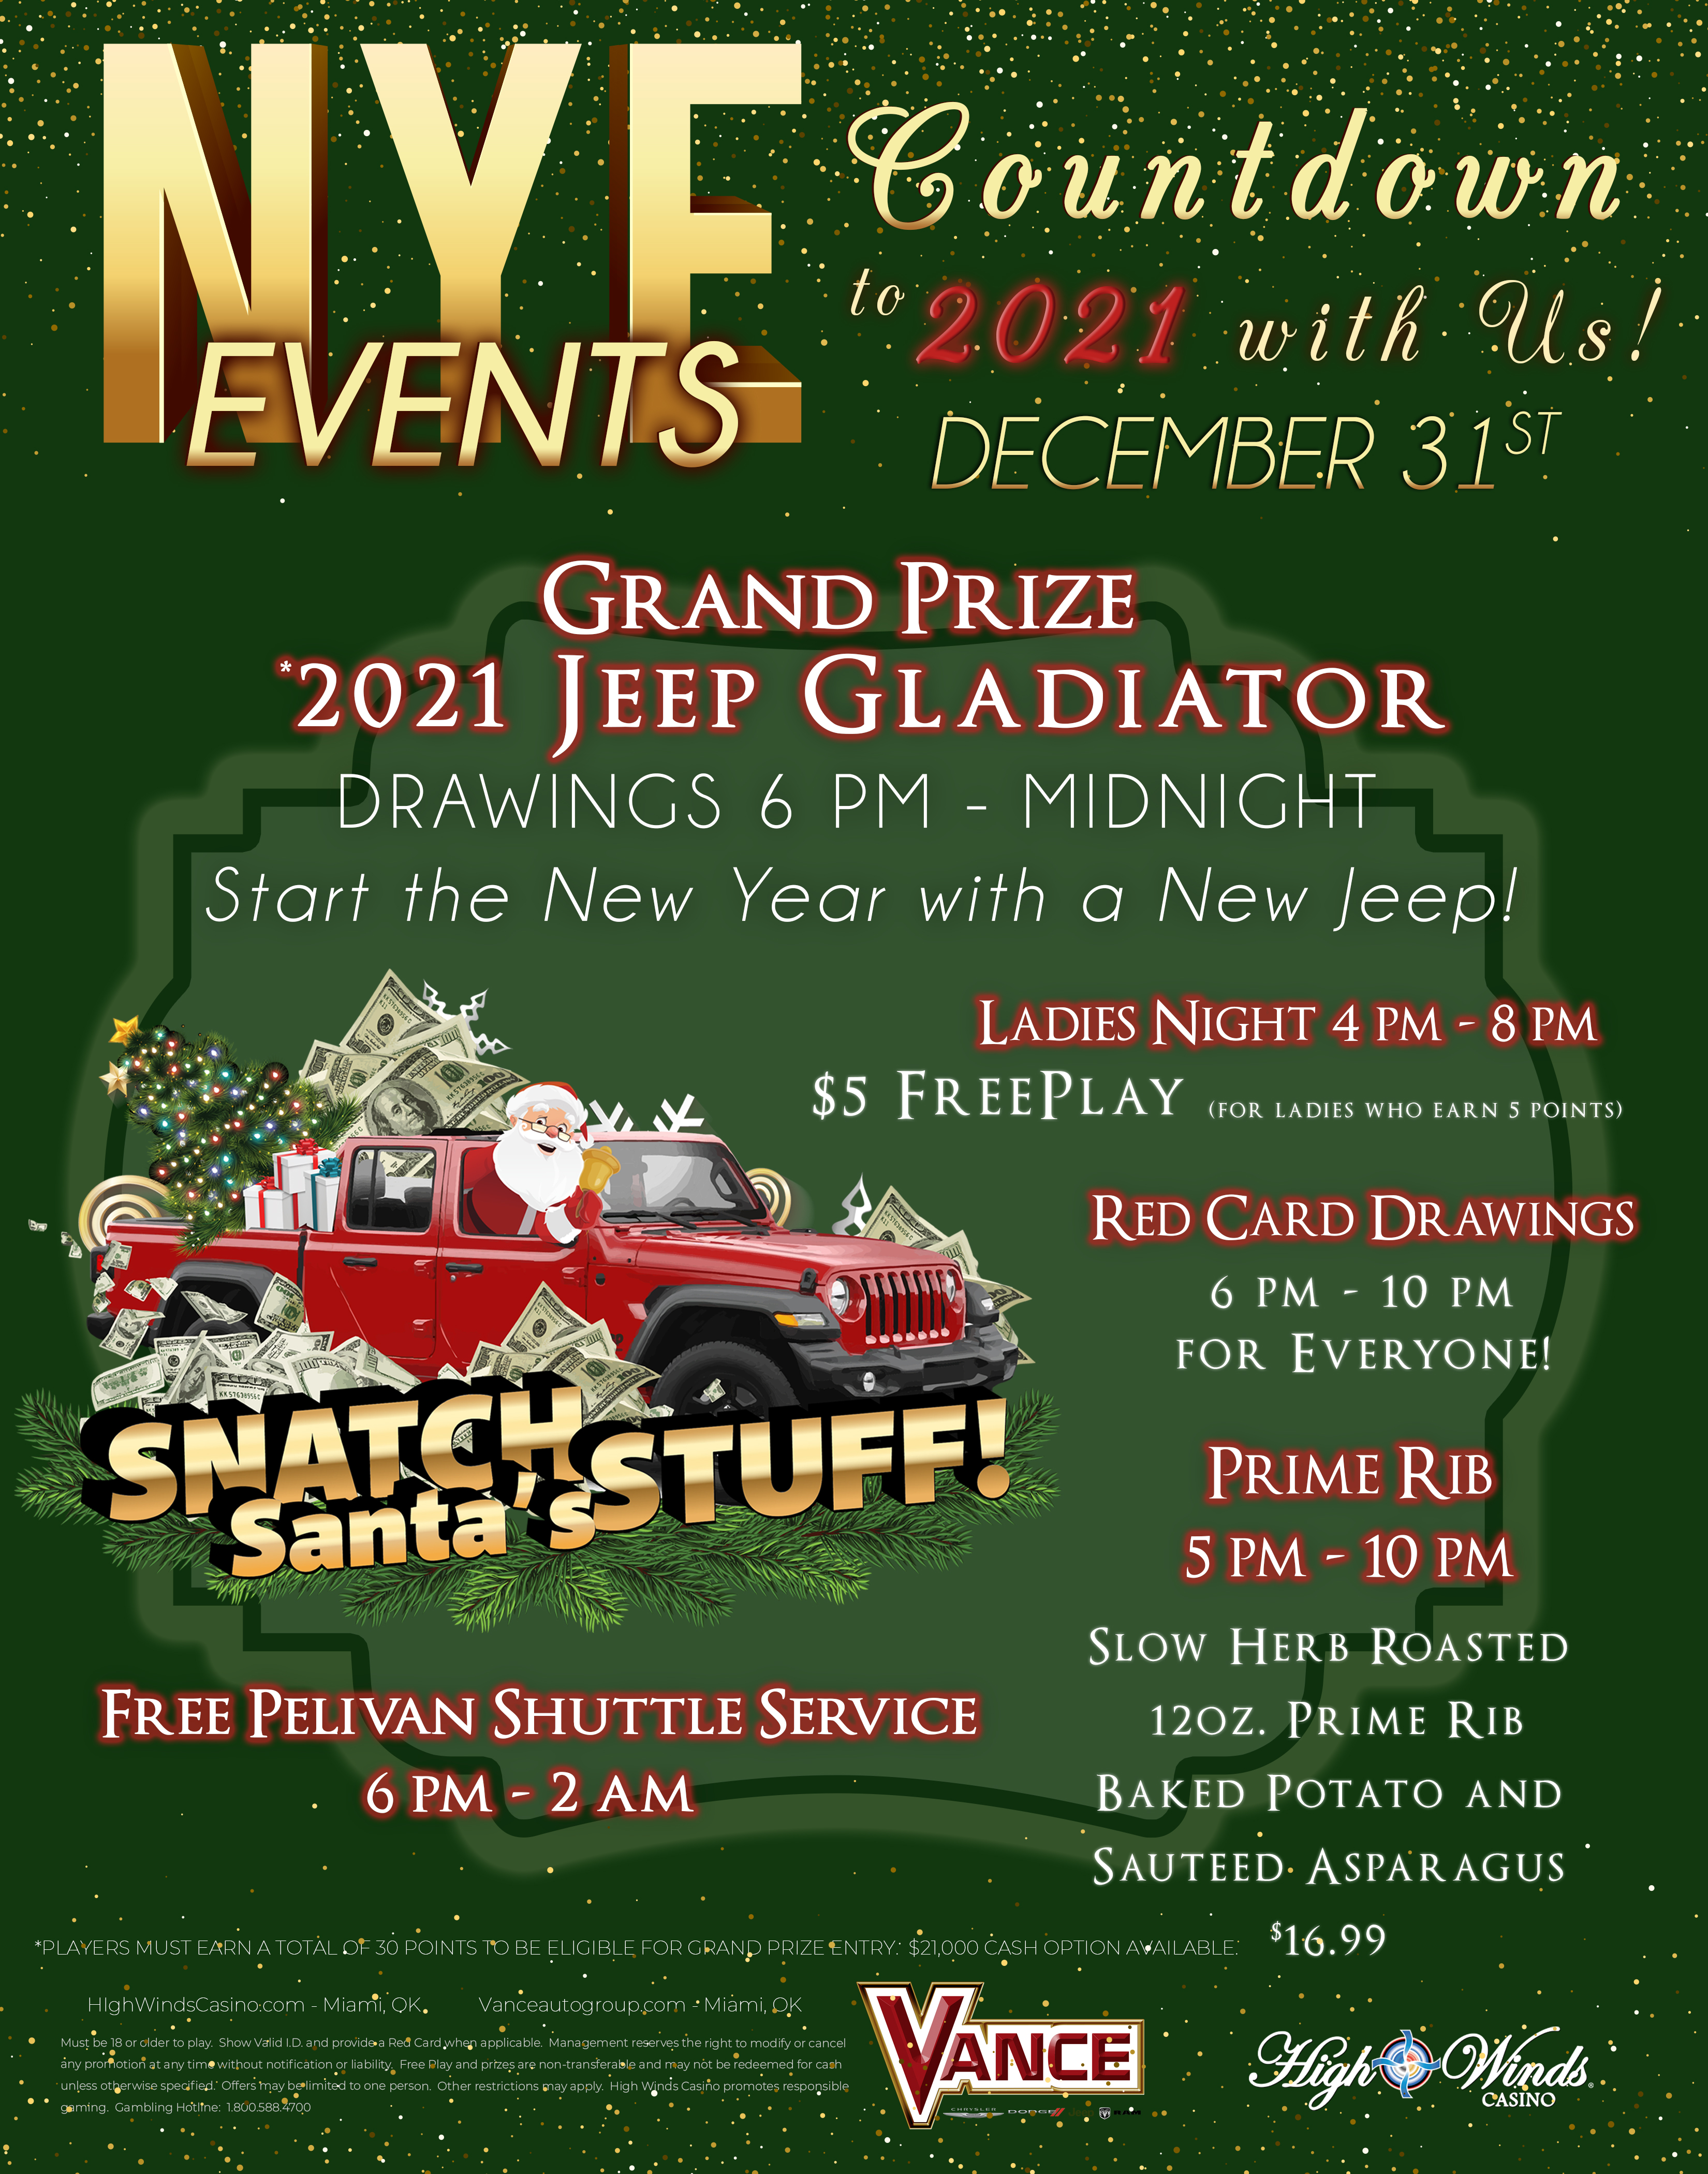 New Years Eve at High Winds 2021 Jeep Gladiator Giveaway